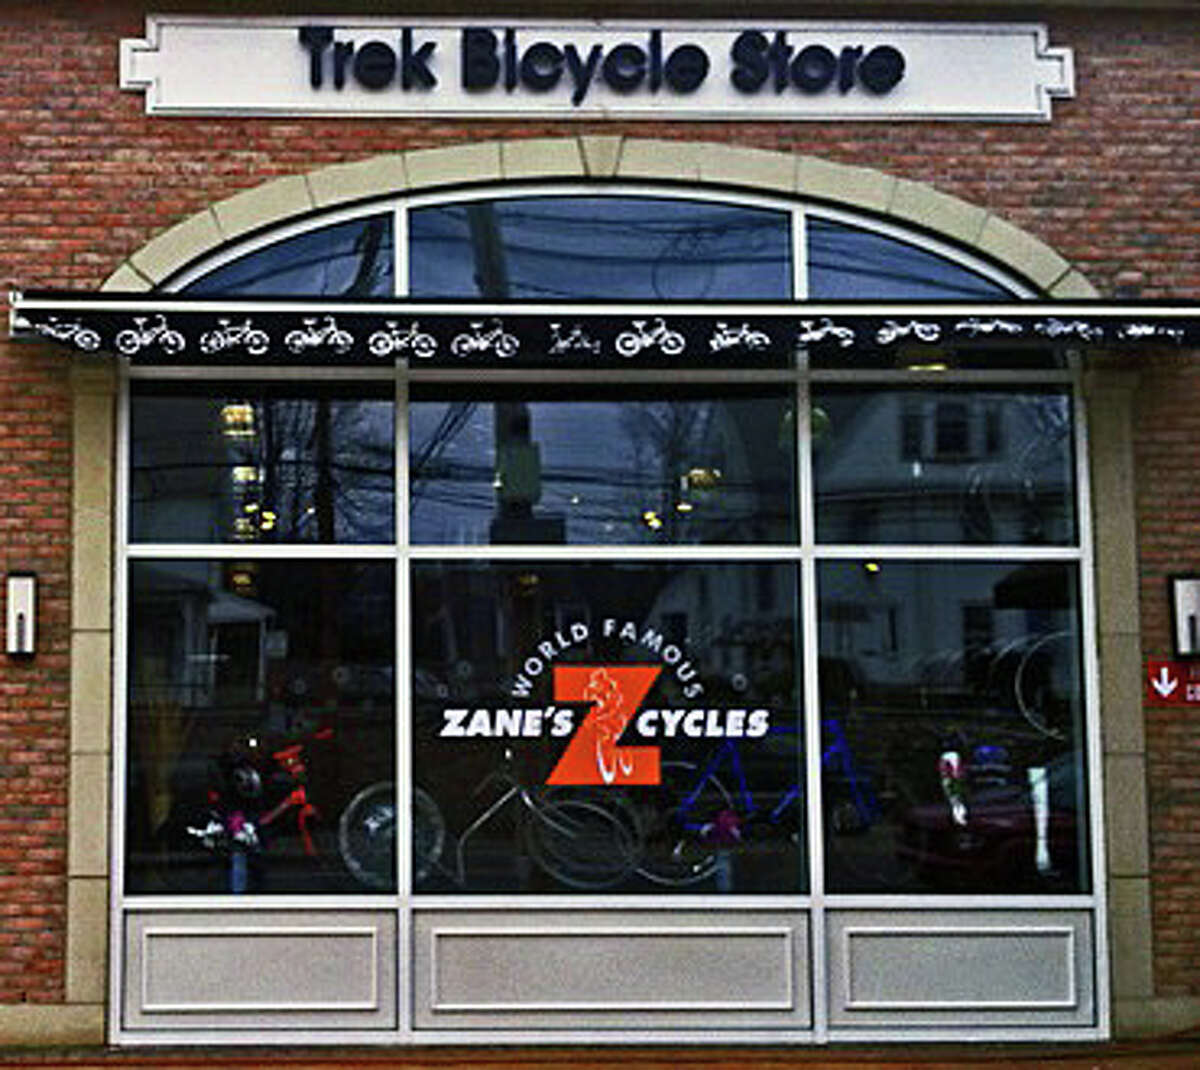 Trek Bicycle Store in the downtown Brick Walk shopping complex has been purchased by Zane's Cycles, a Branford-based business.